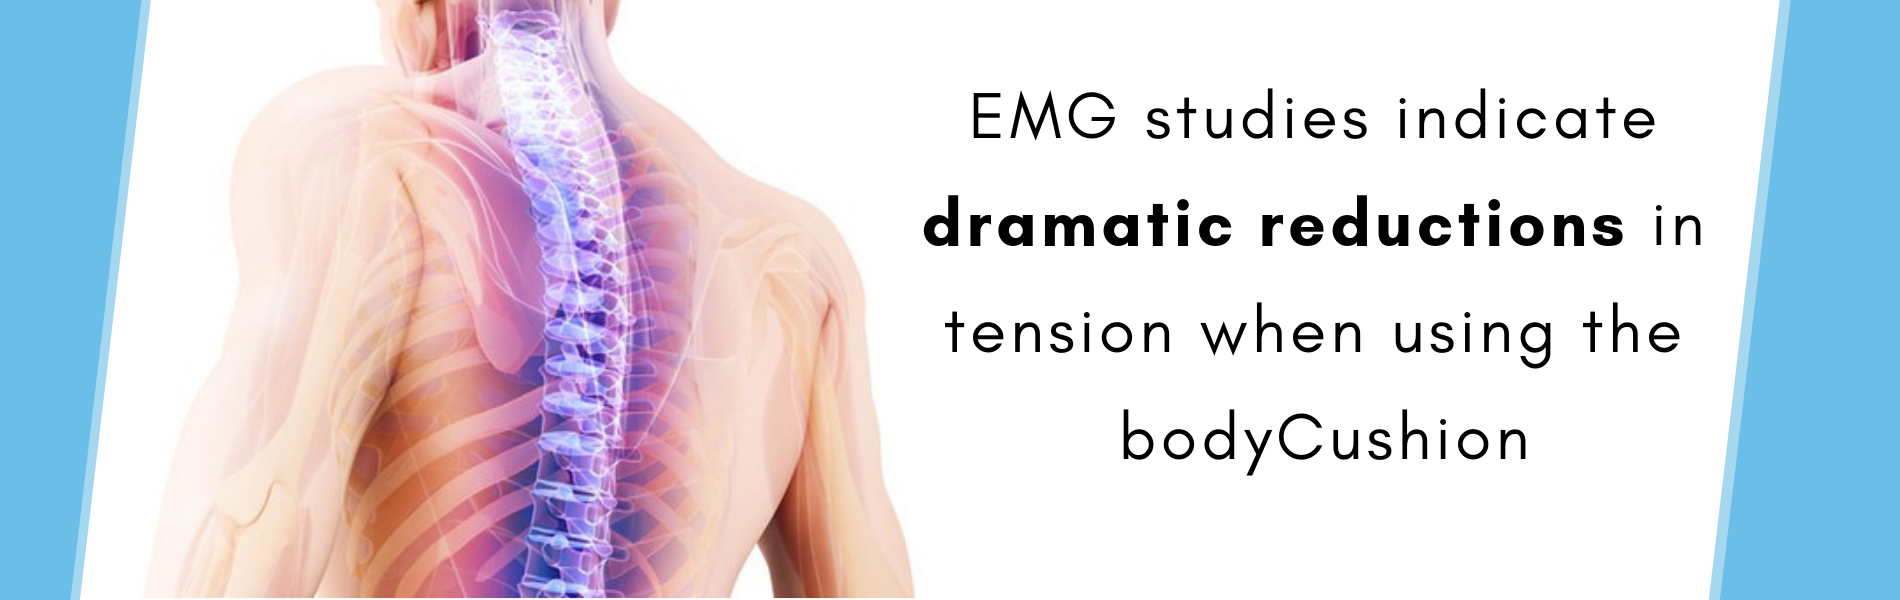 EMG studies indicate dramatic reductions in tension when using the boduCushion